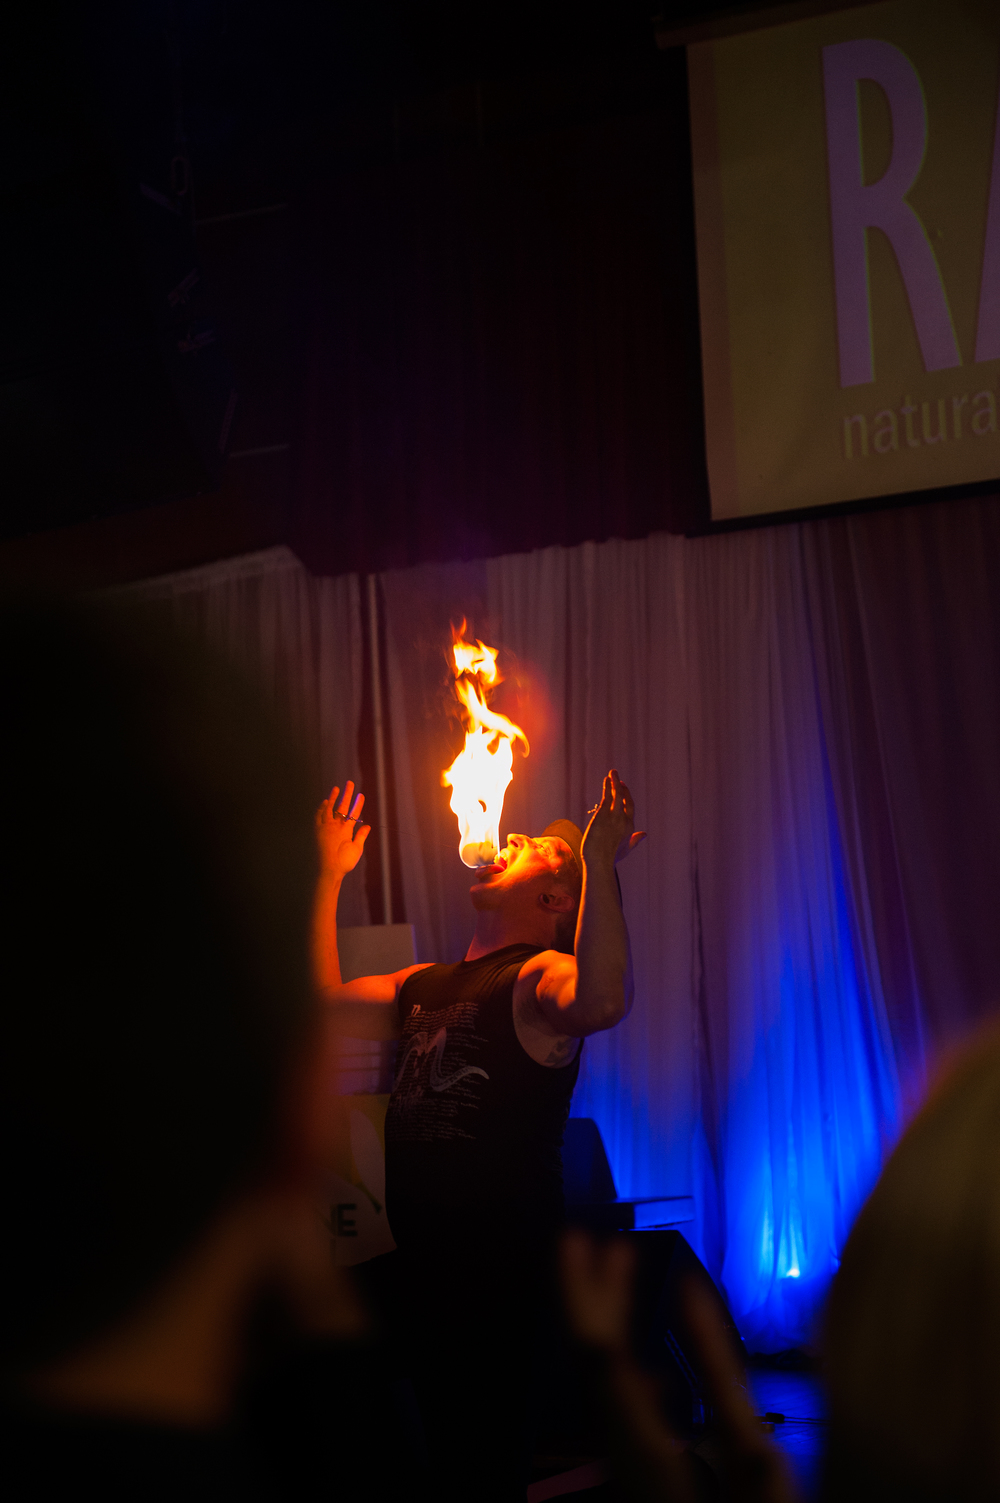 Fenyx Fyre displaying another fire ball, which he is licking on the RAW stage